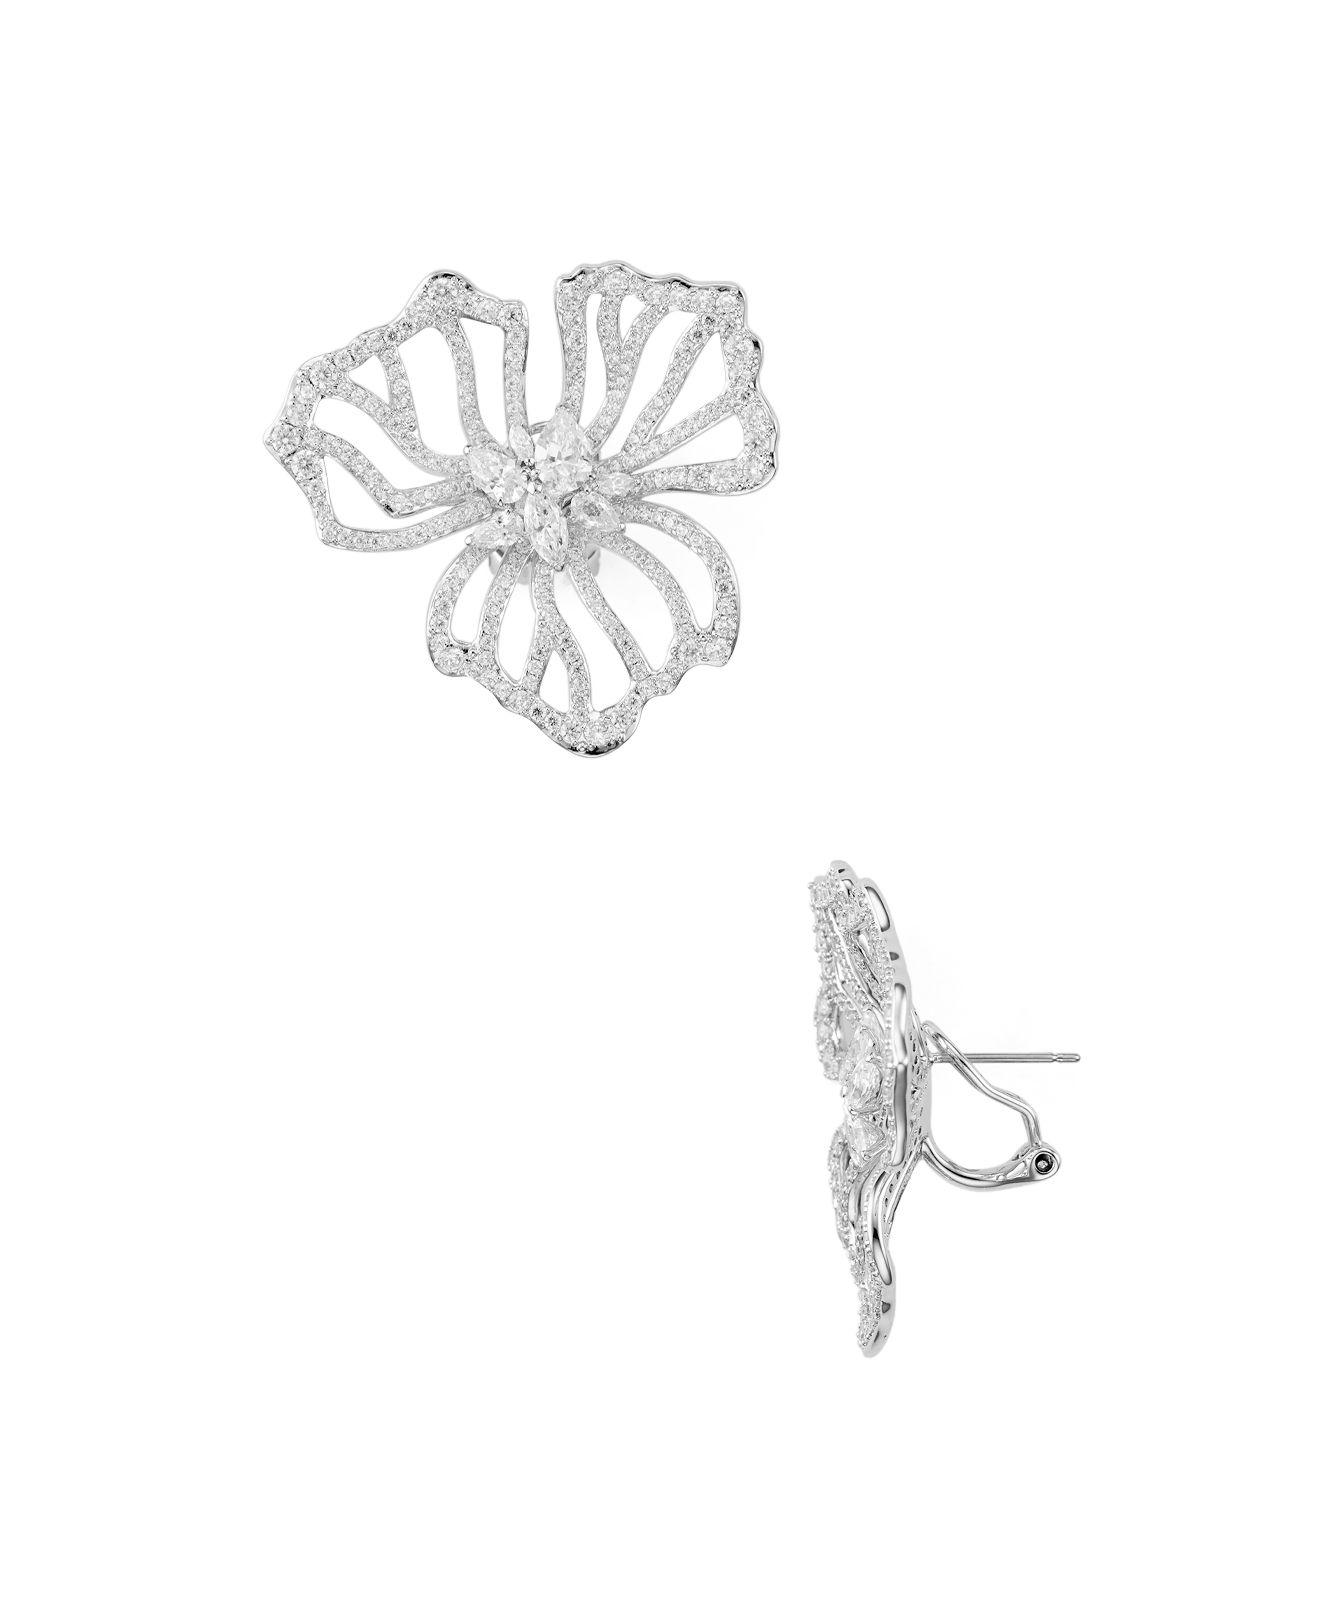 clip silver flower edges earrings large image